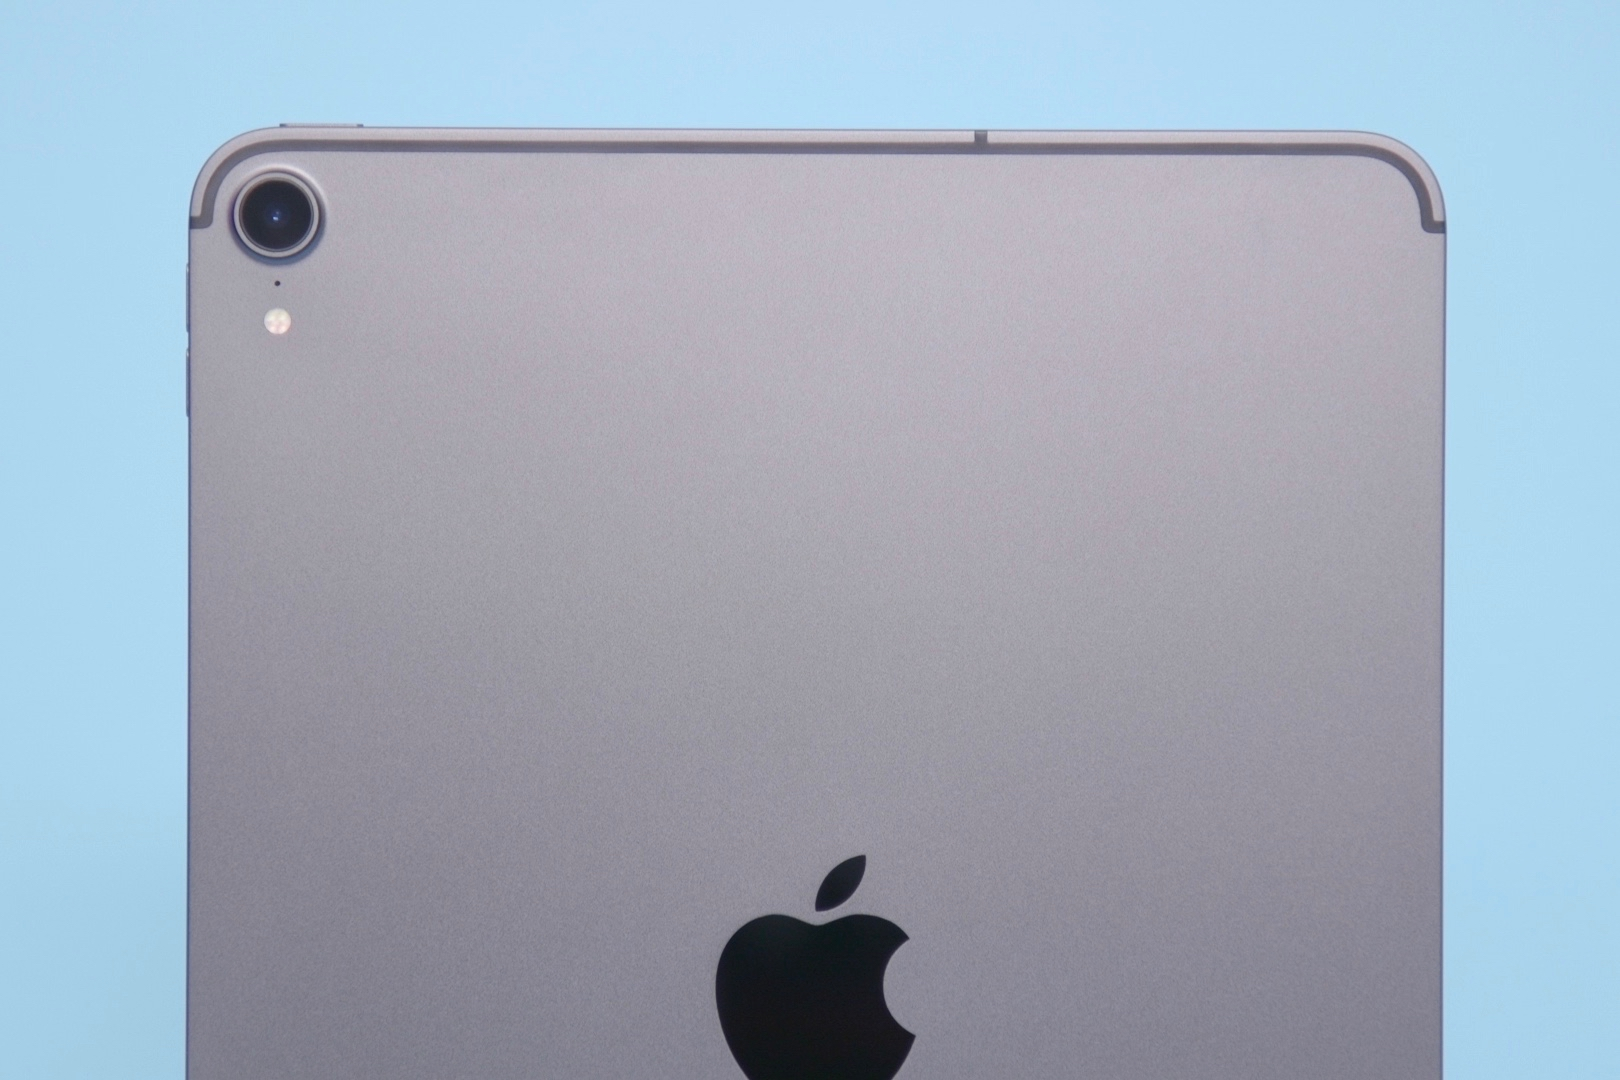 Apple could give the iPhone an iPad Pro-style makeover, report claims